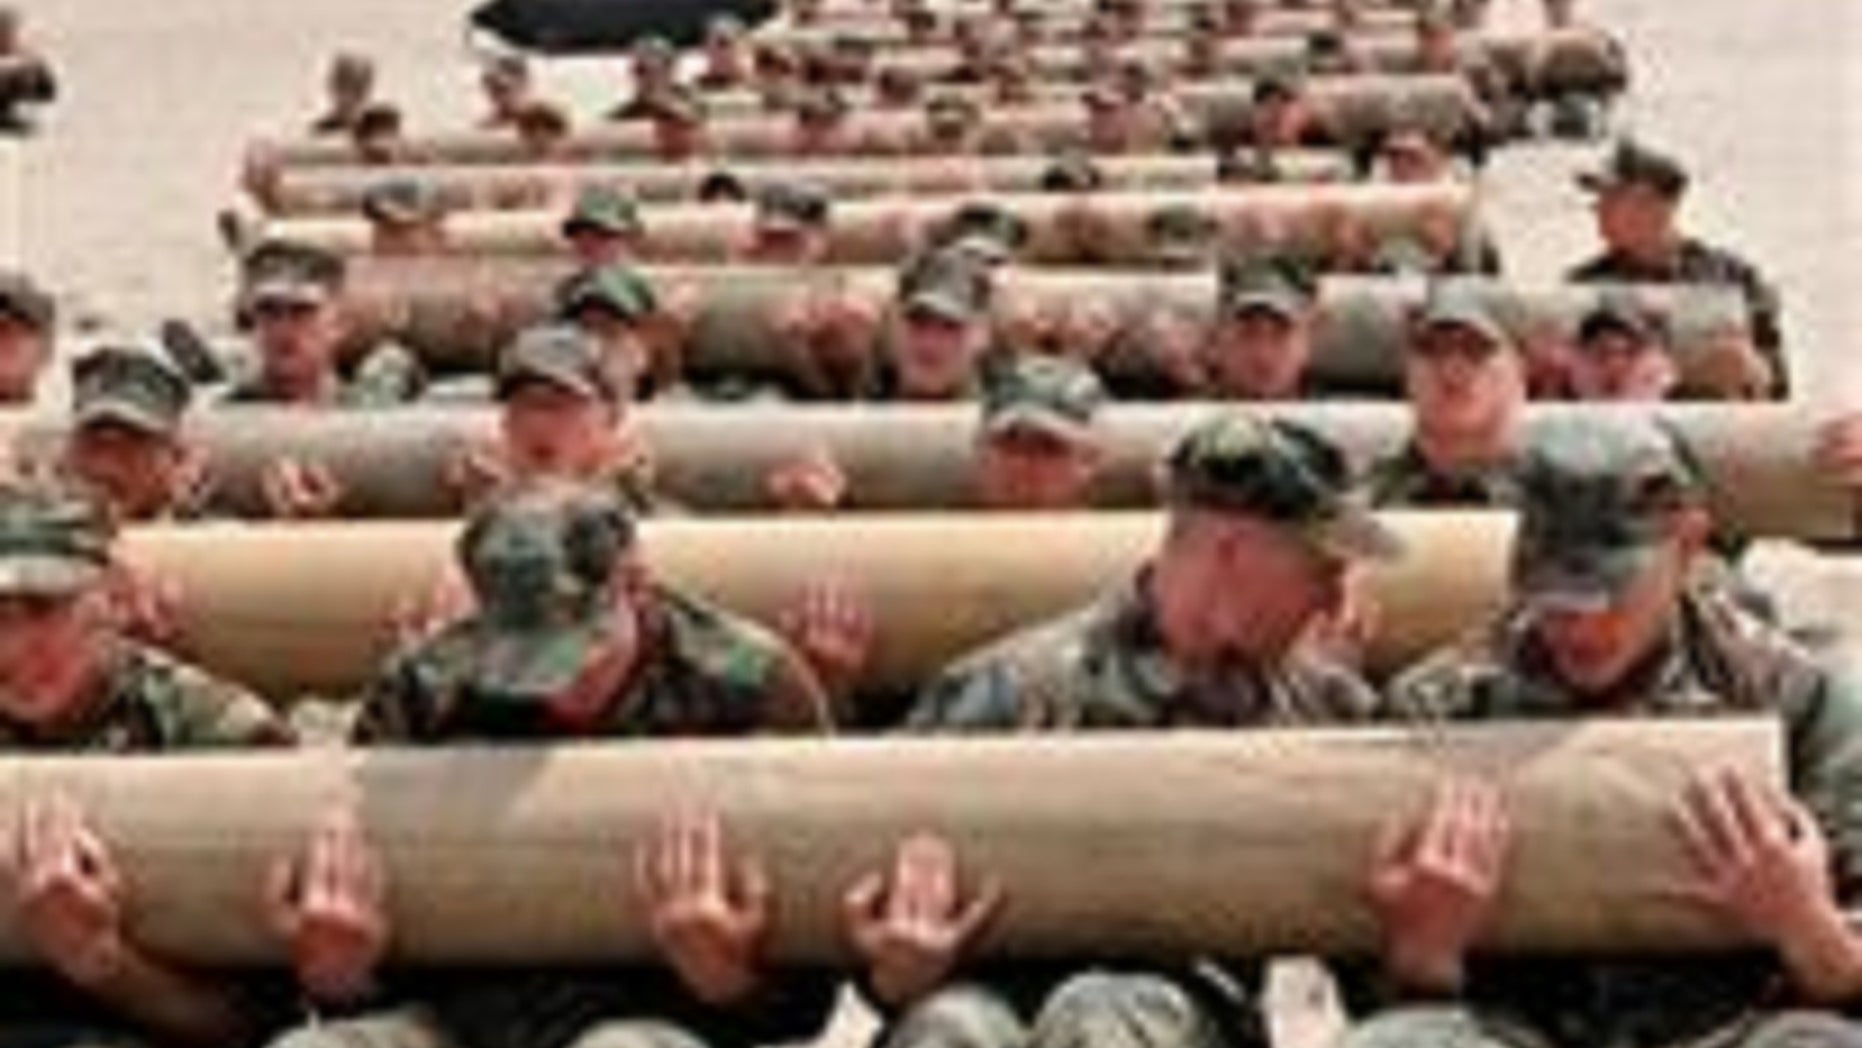 U.S. Navy SEAL candidates use teamwork to perform physical training exercises with 600-pound logs.